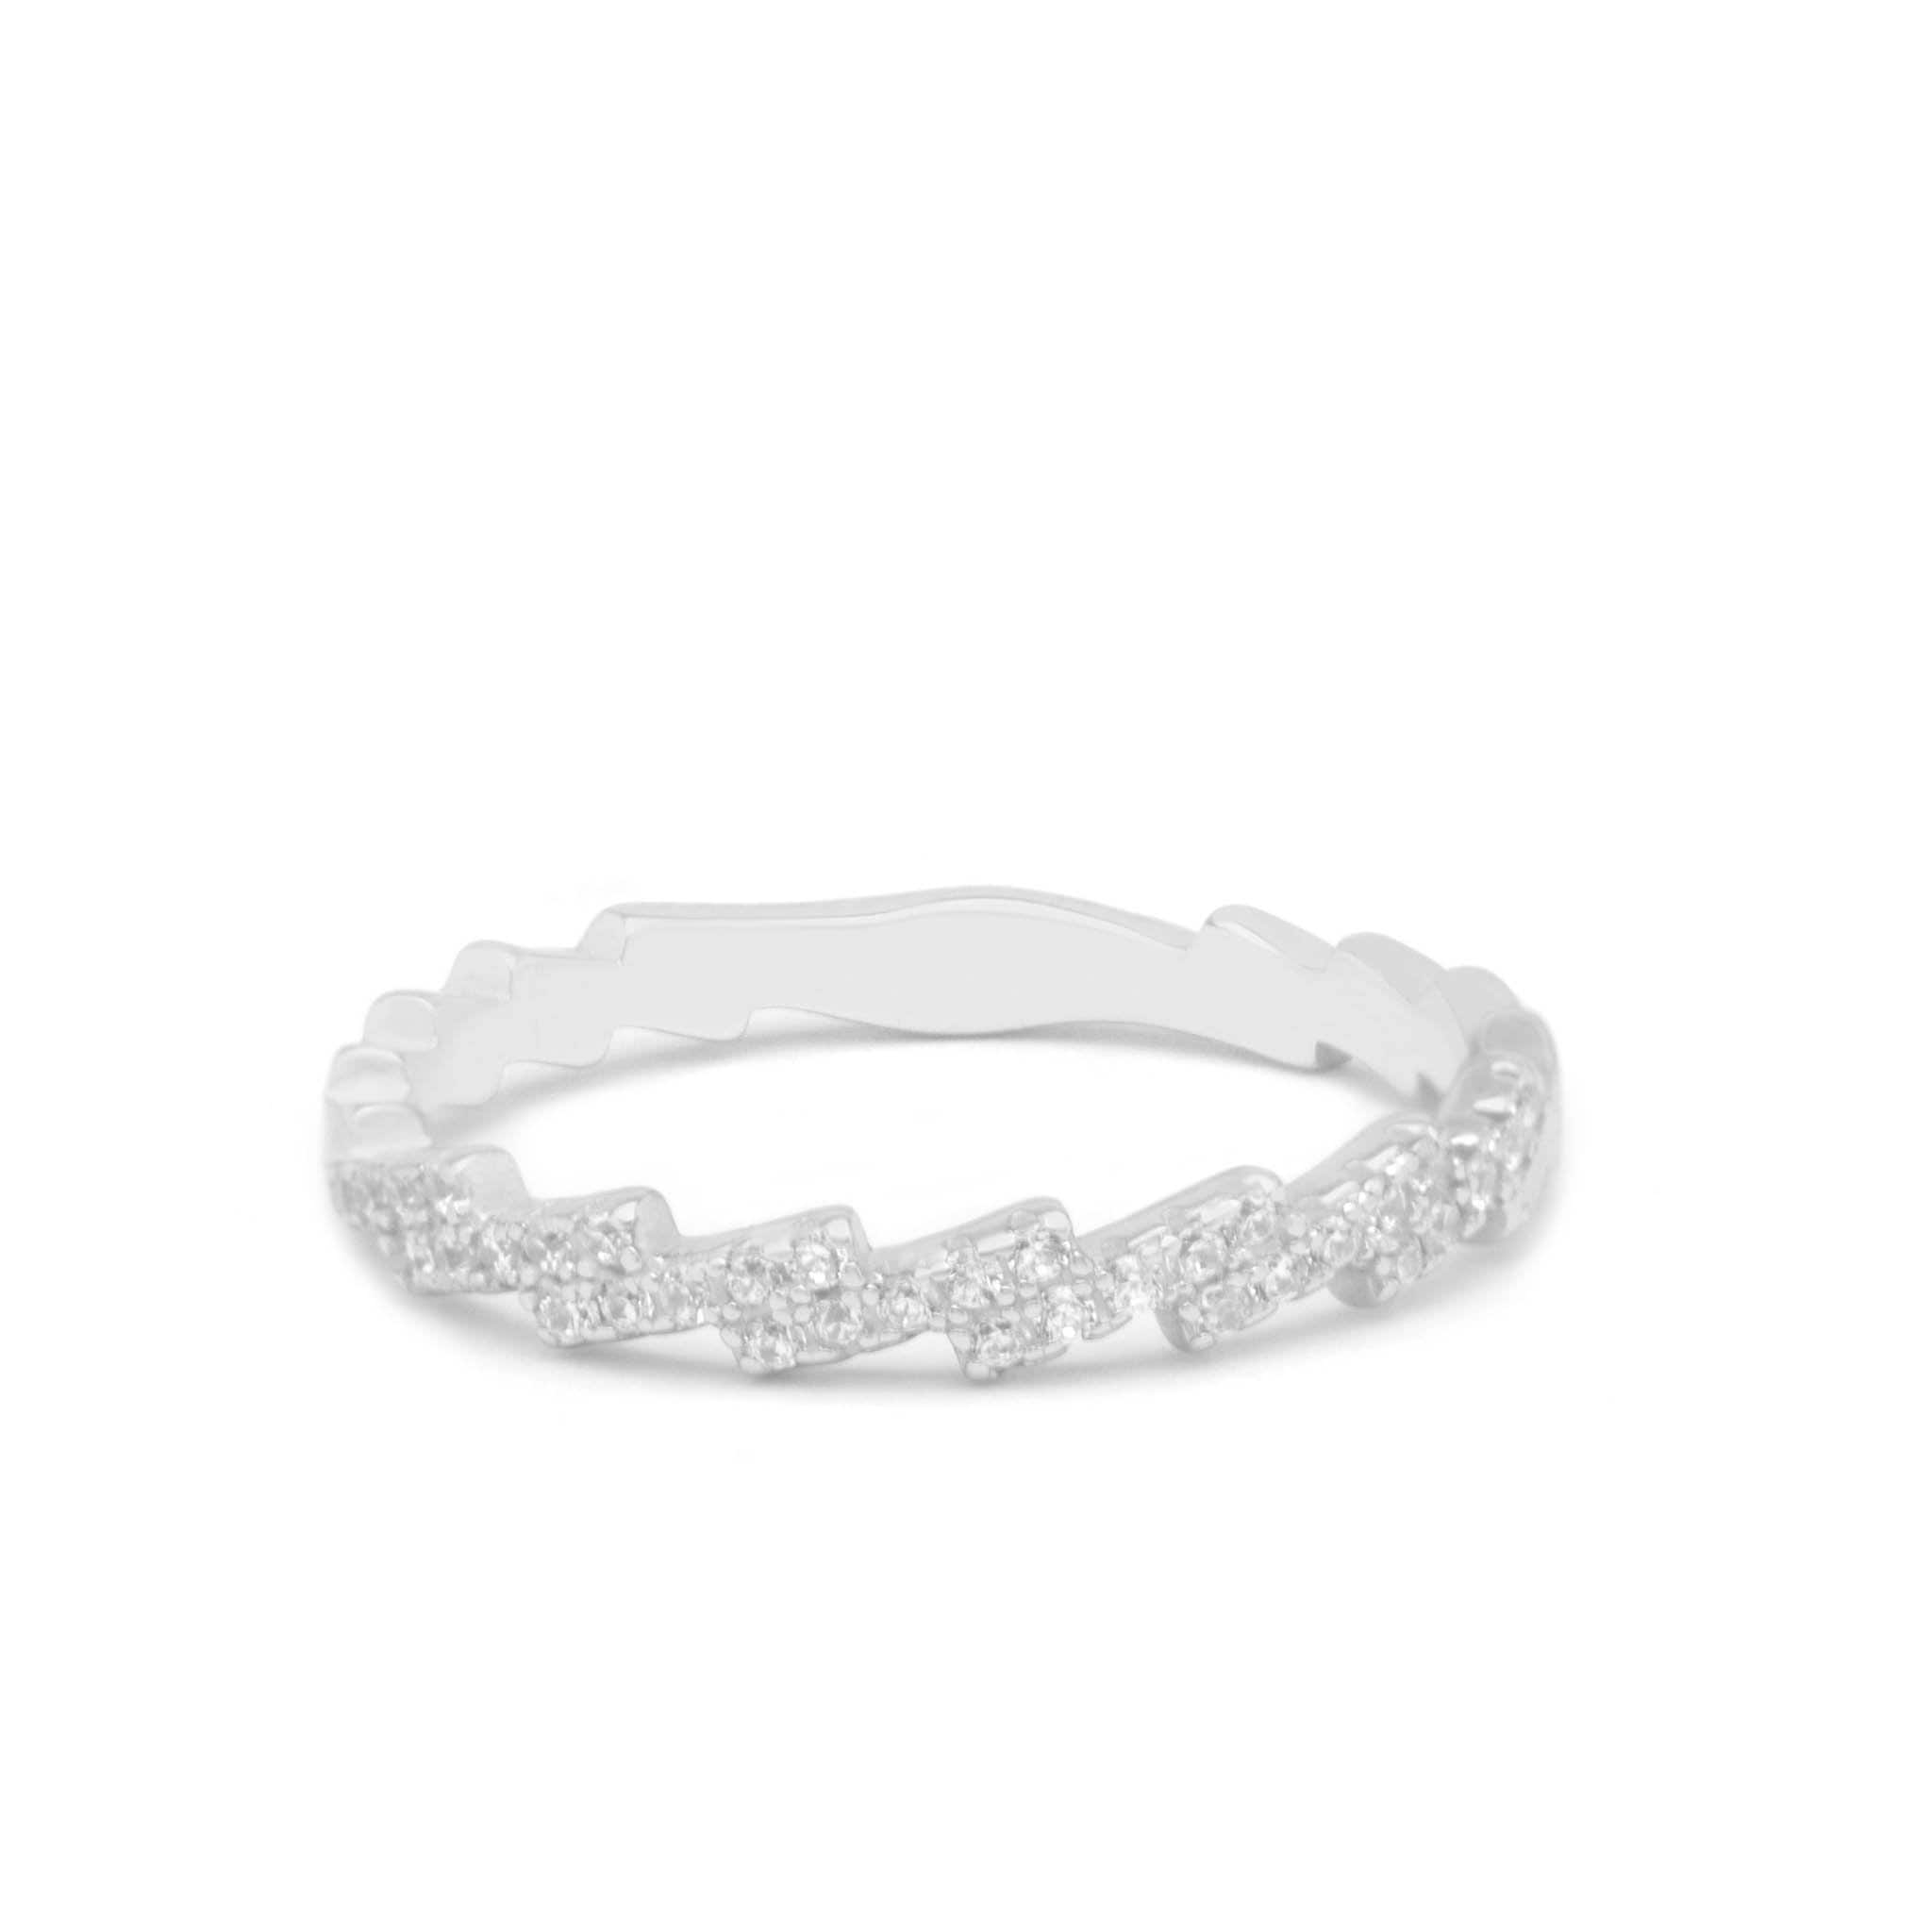 Jeanne's Jewels Rings White Gold / 5 Rylee